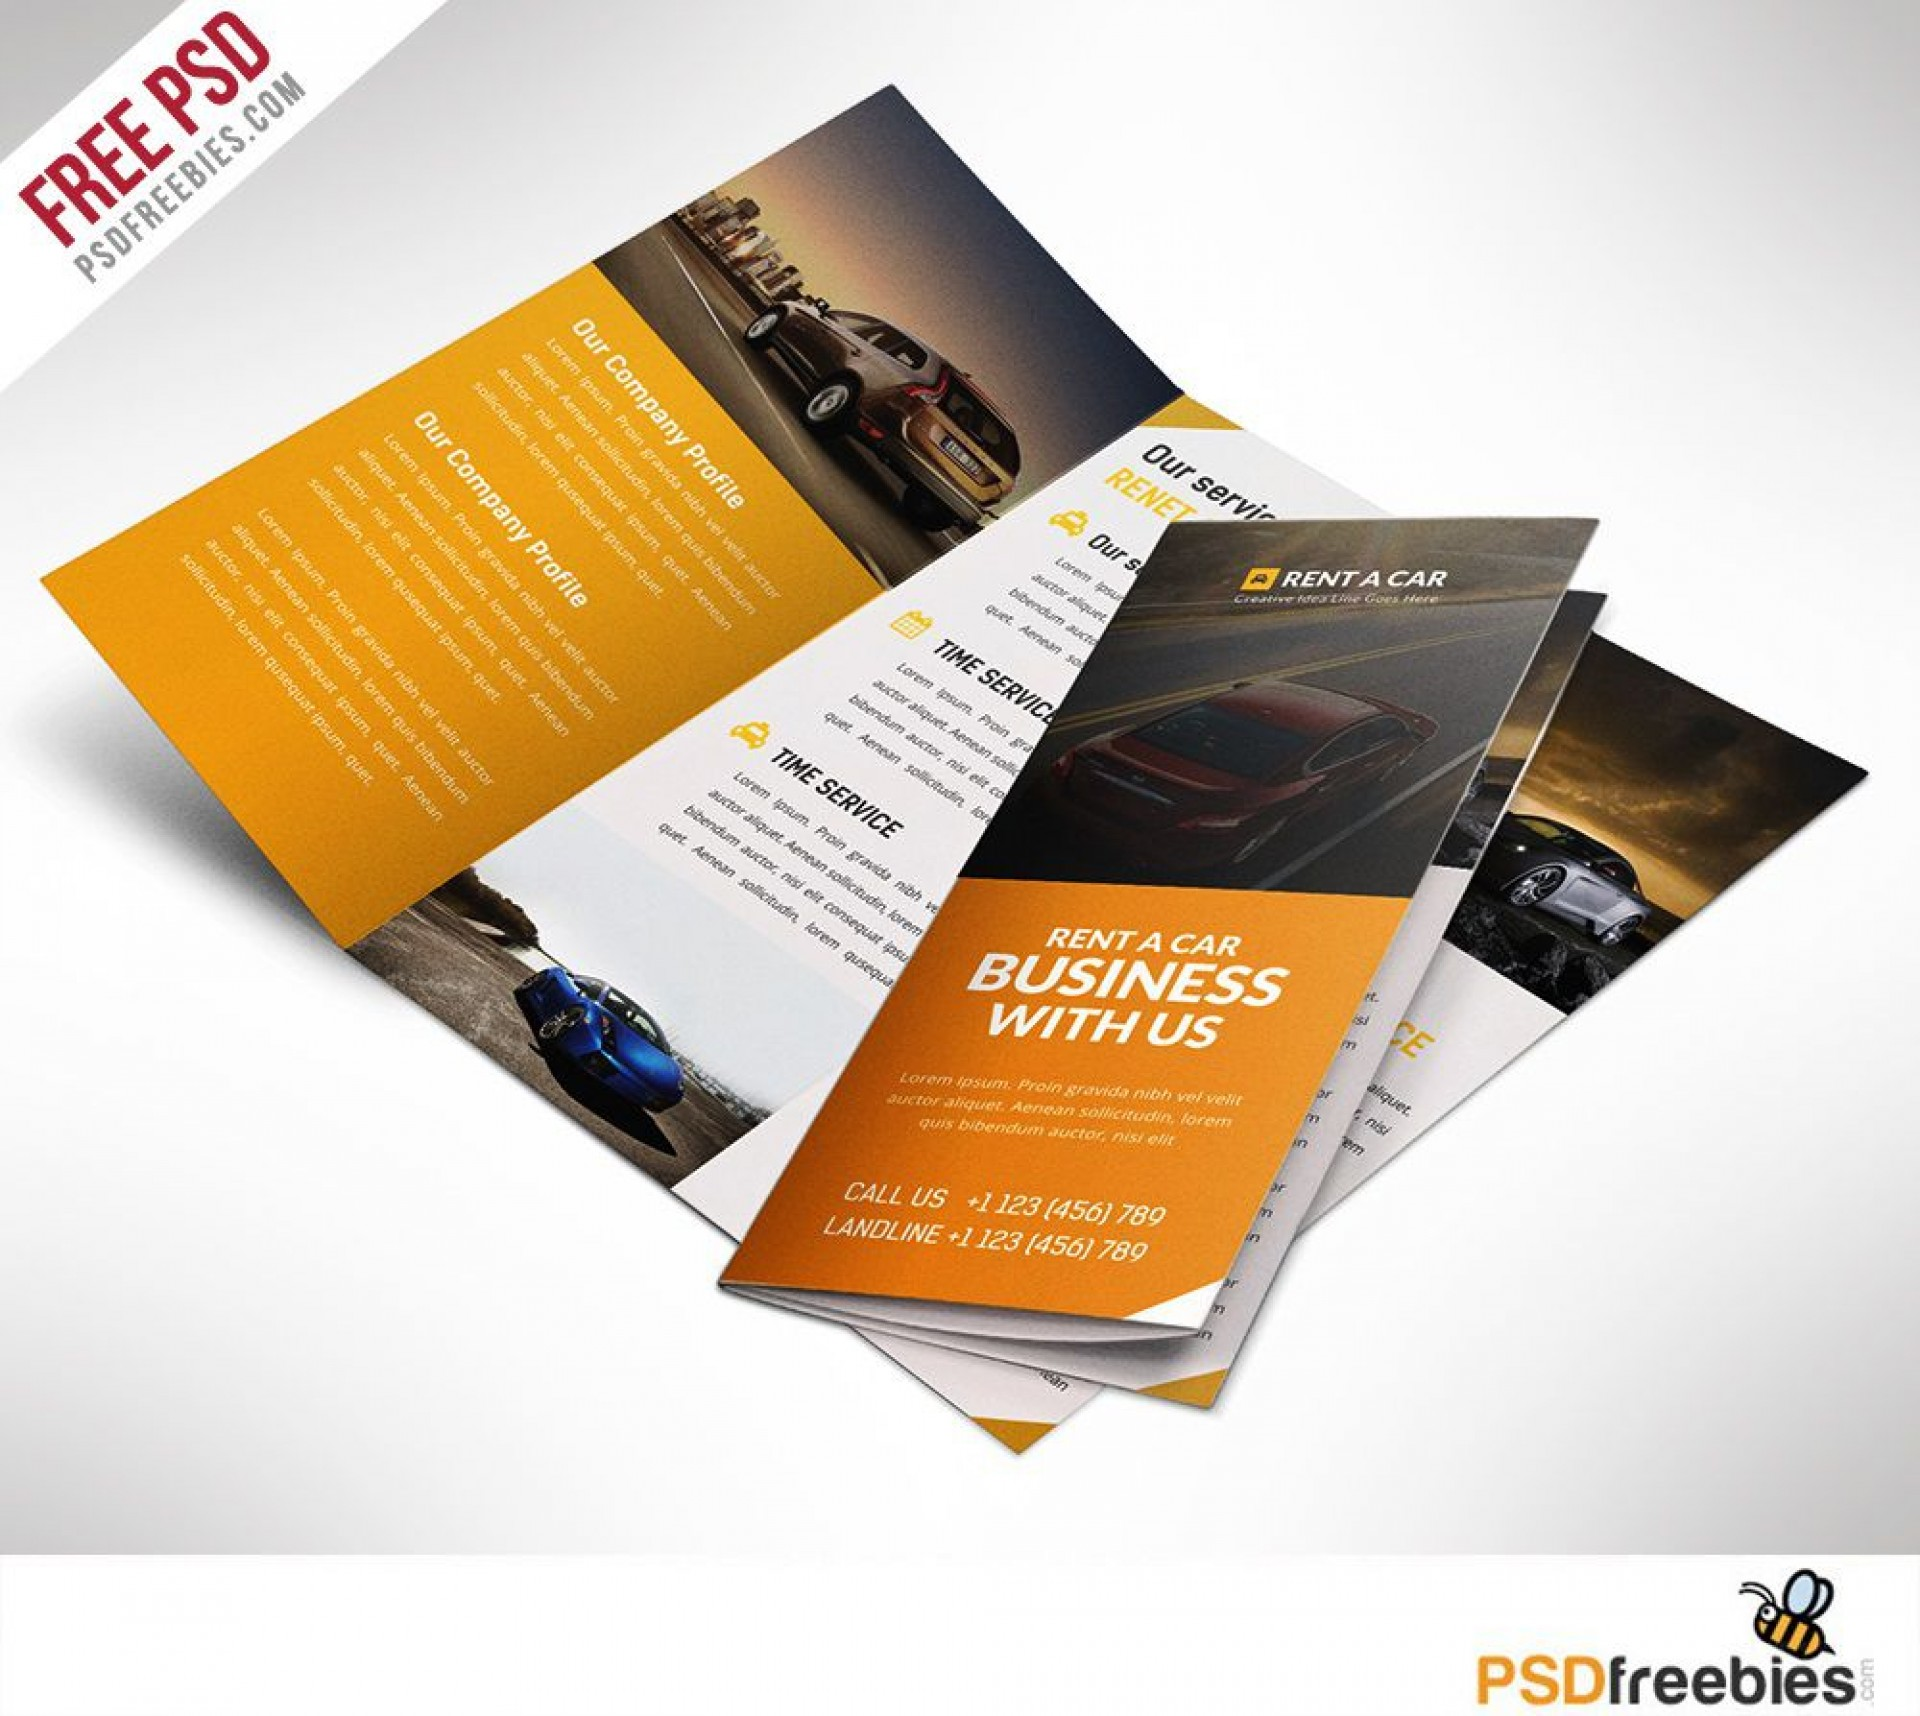 003 Unforgettable Photoshop Brochure Design Template Free Download Example 1920